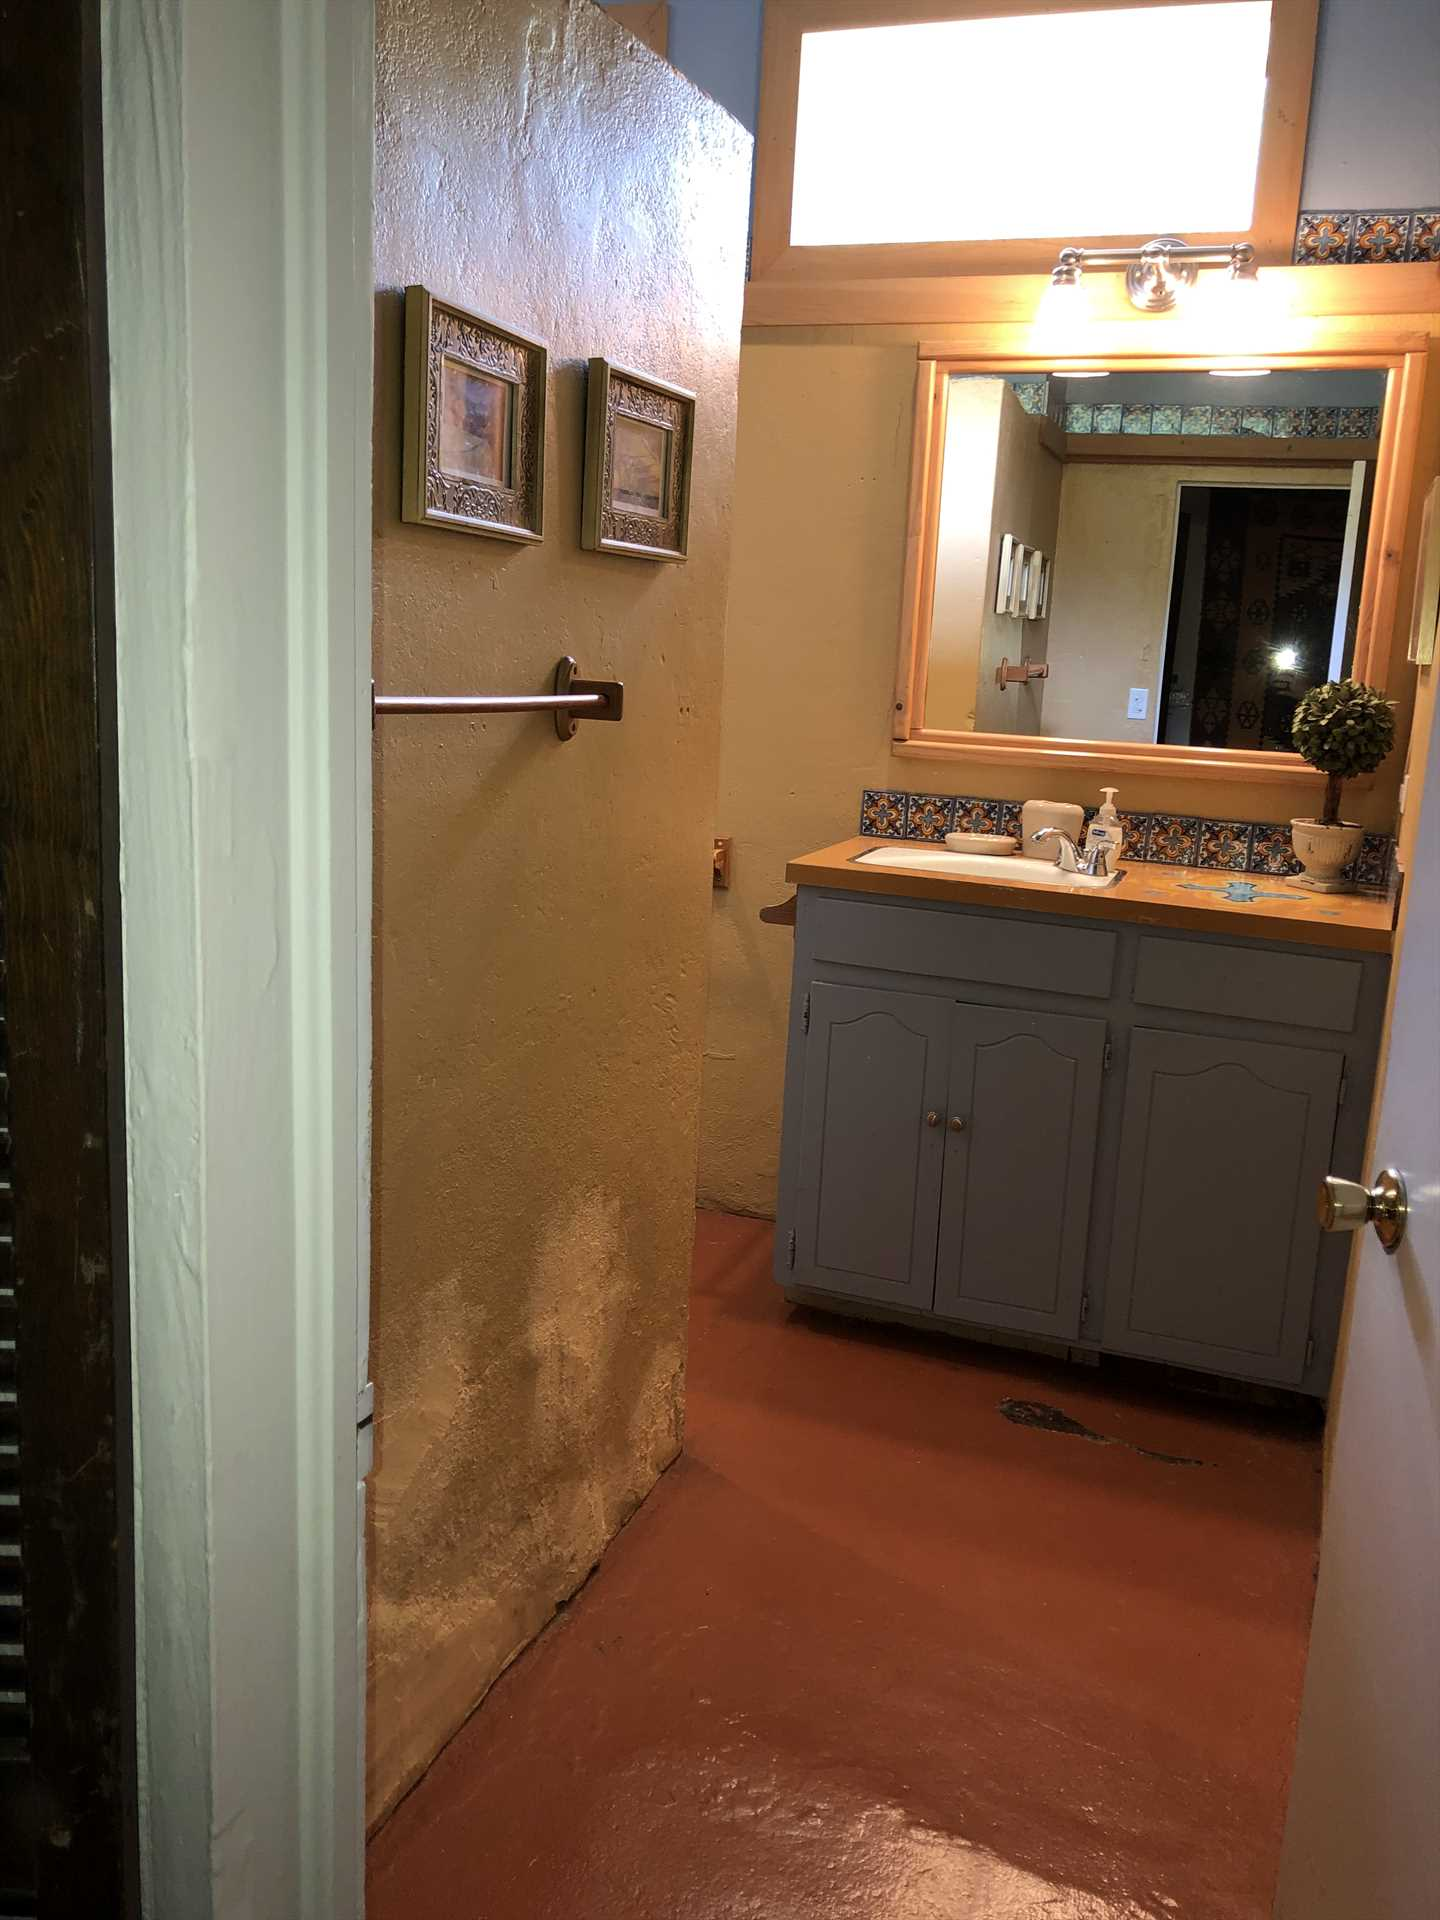 This full bath (one of three) features a shower stall and a warm color scheme. Bed and bath linens are provided for everyone!